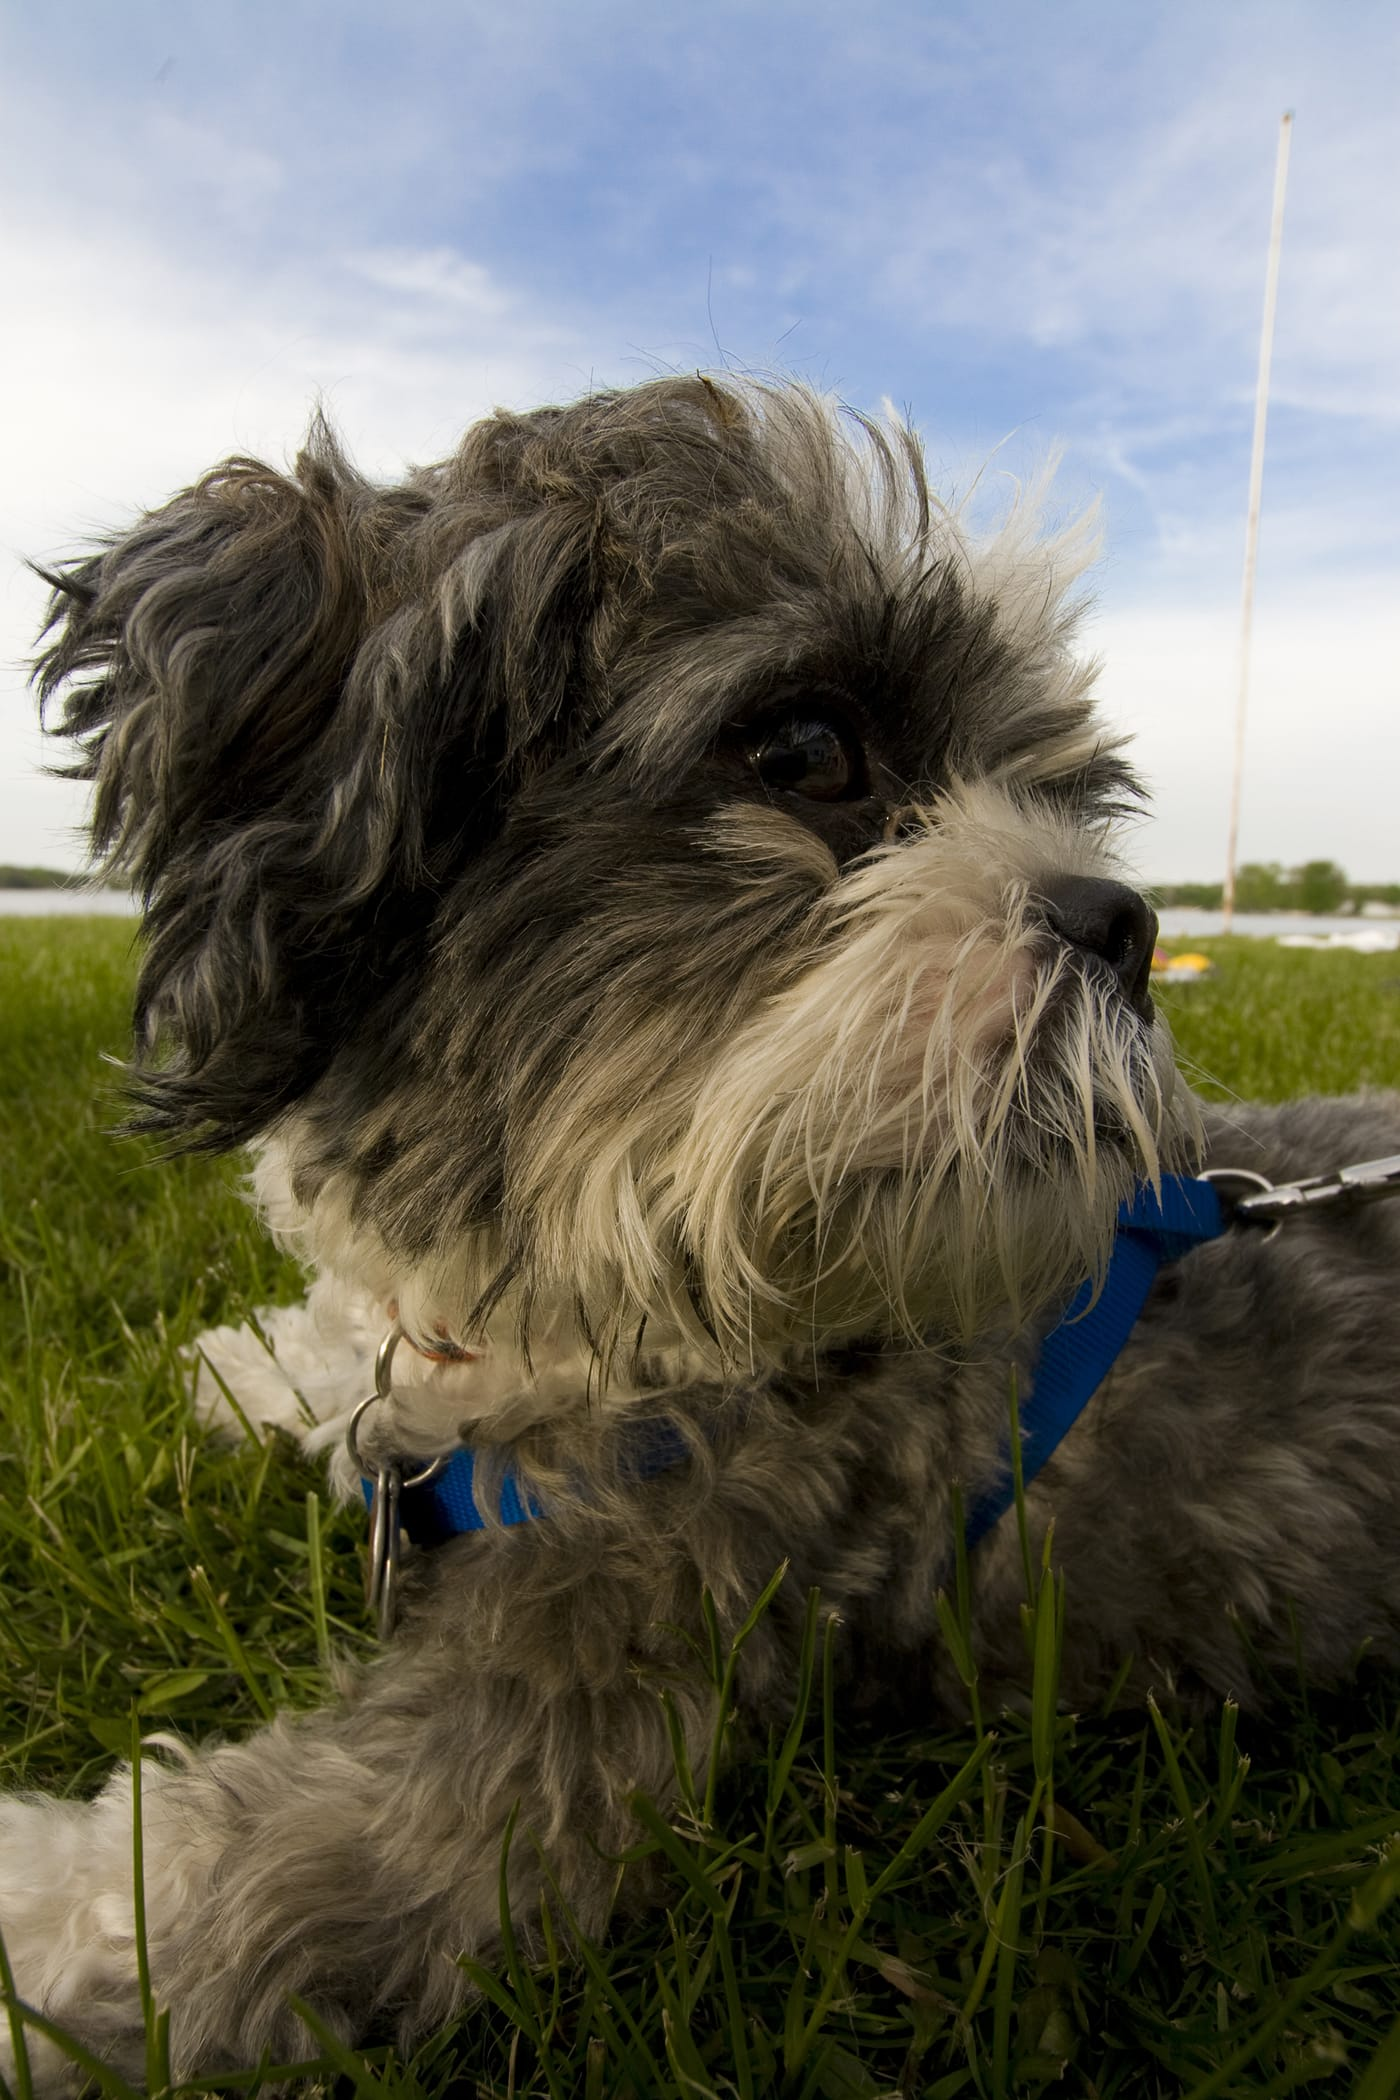 Luther the dog on the lake - Memorial Day Weekend in Decatur, Michigan